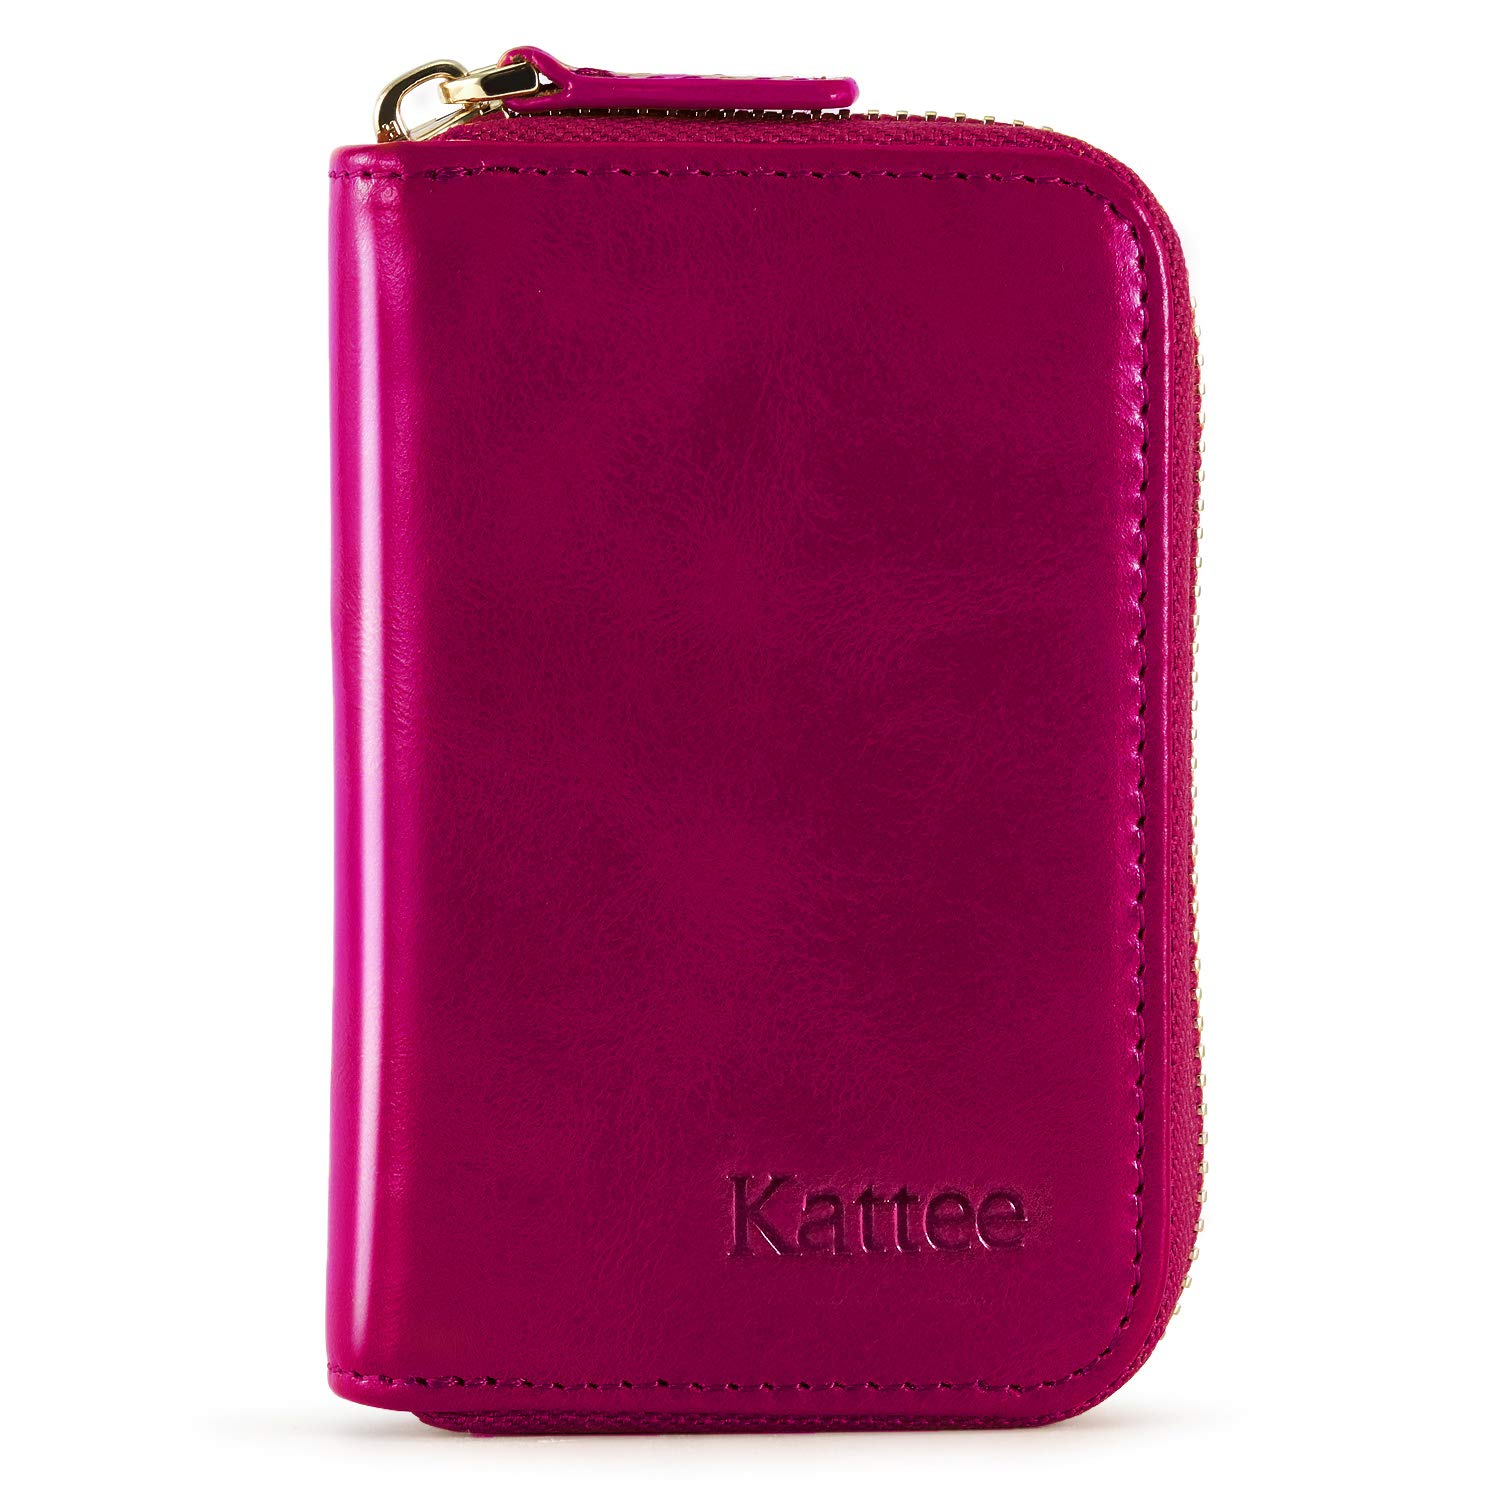 Kattee Womens RFID Blocking Small Compact Credit Card Holder Leather Zipper Pocket Wallet